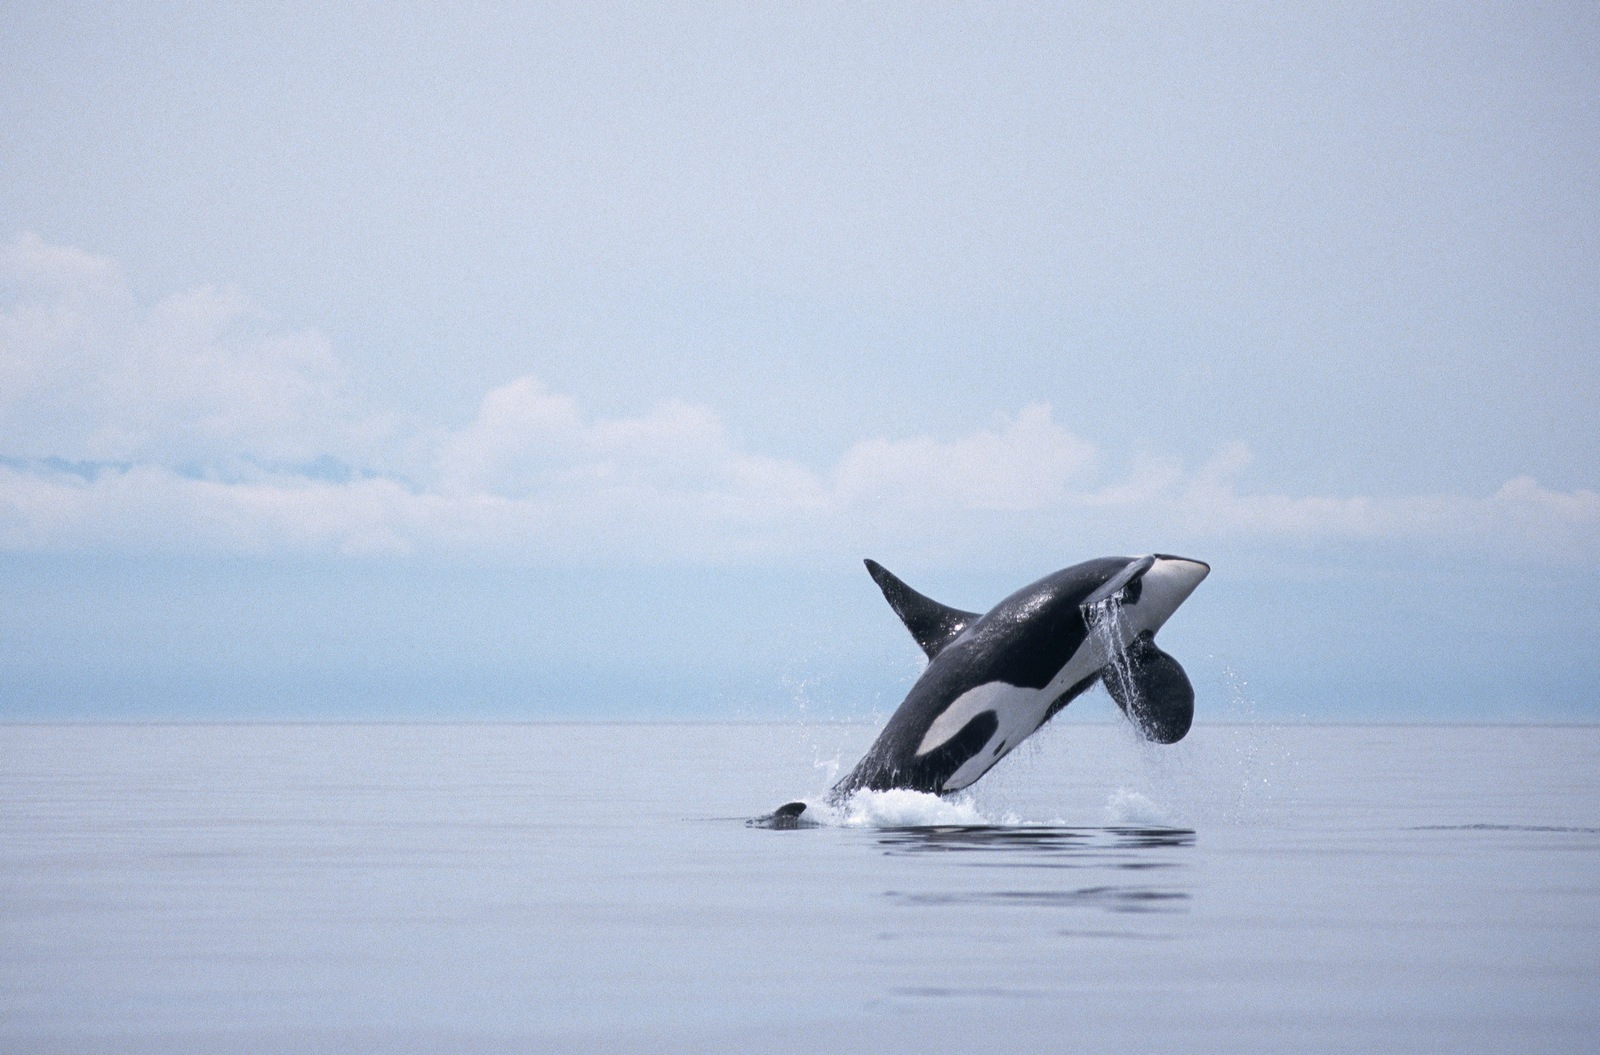 Malignant Sharks and Killer Whales My image 1600x1055